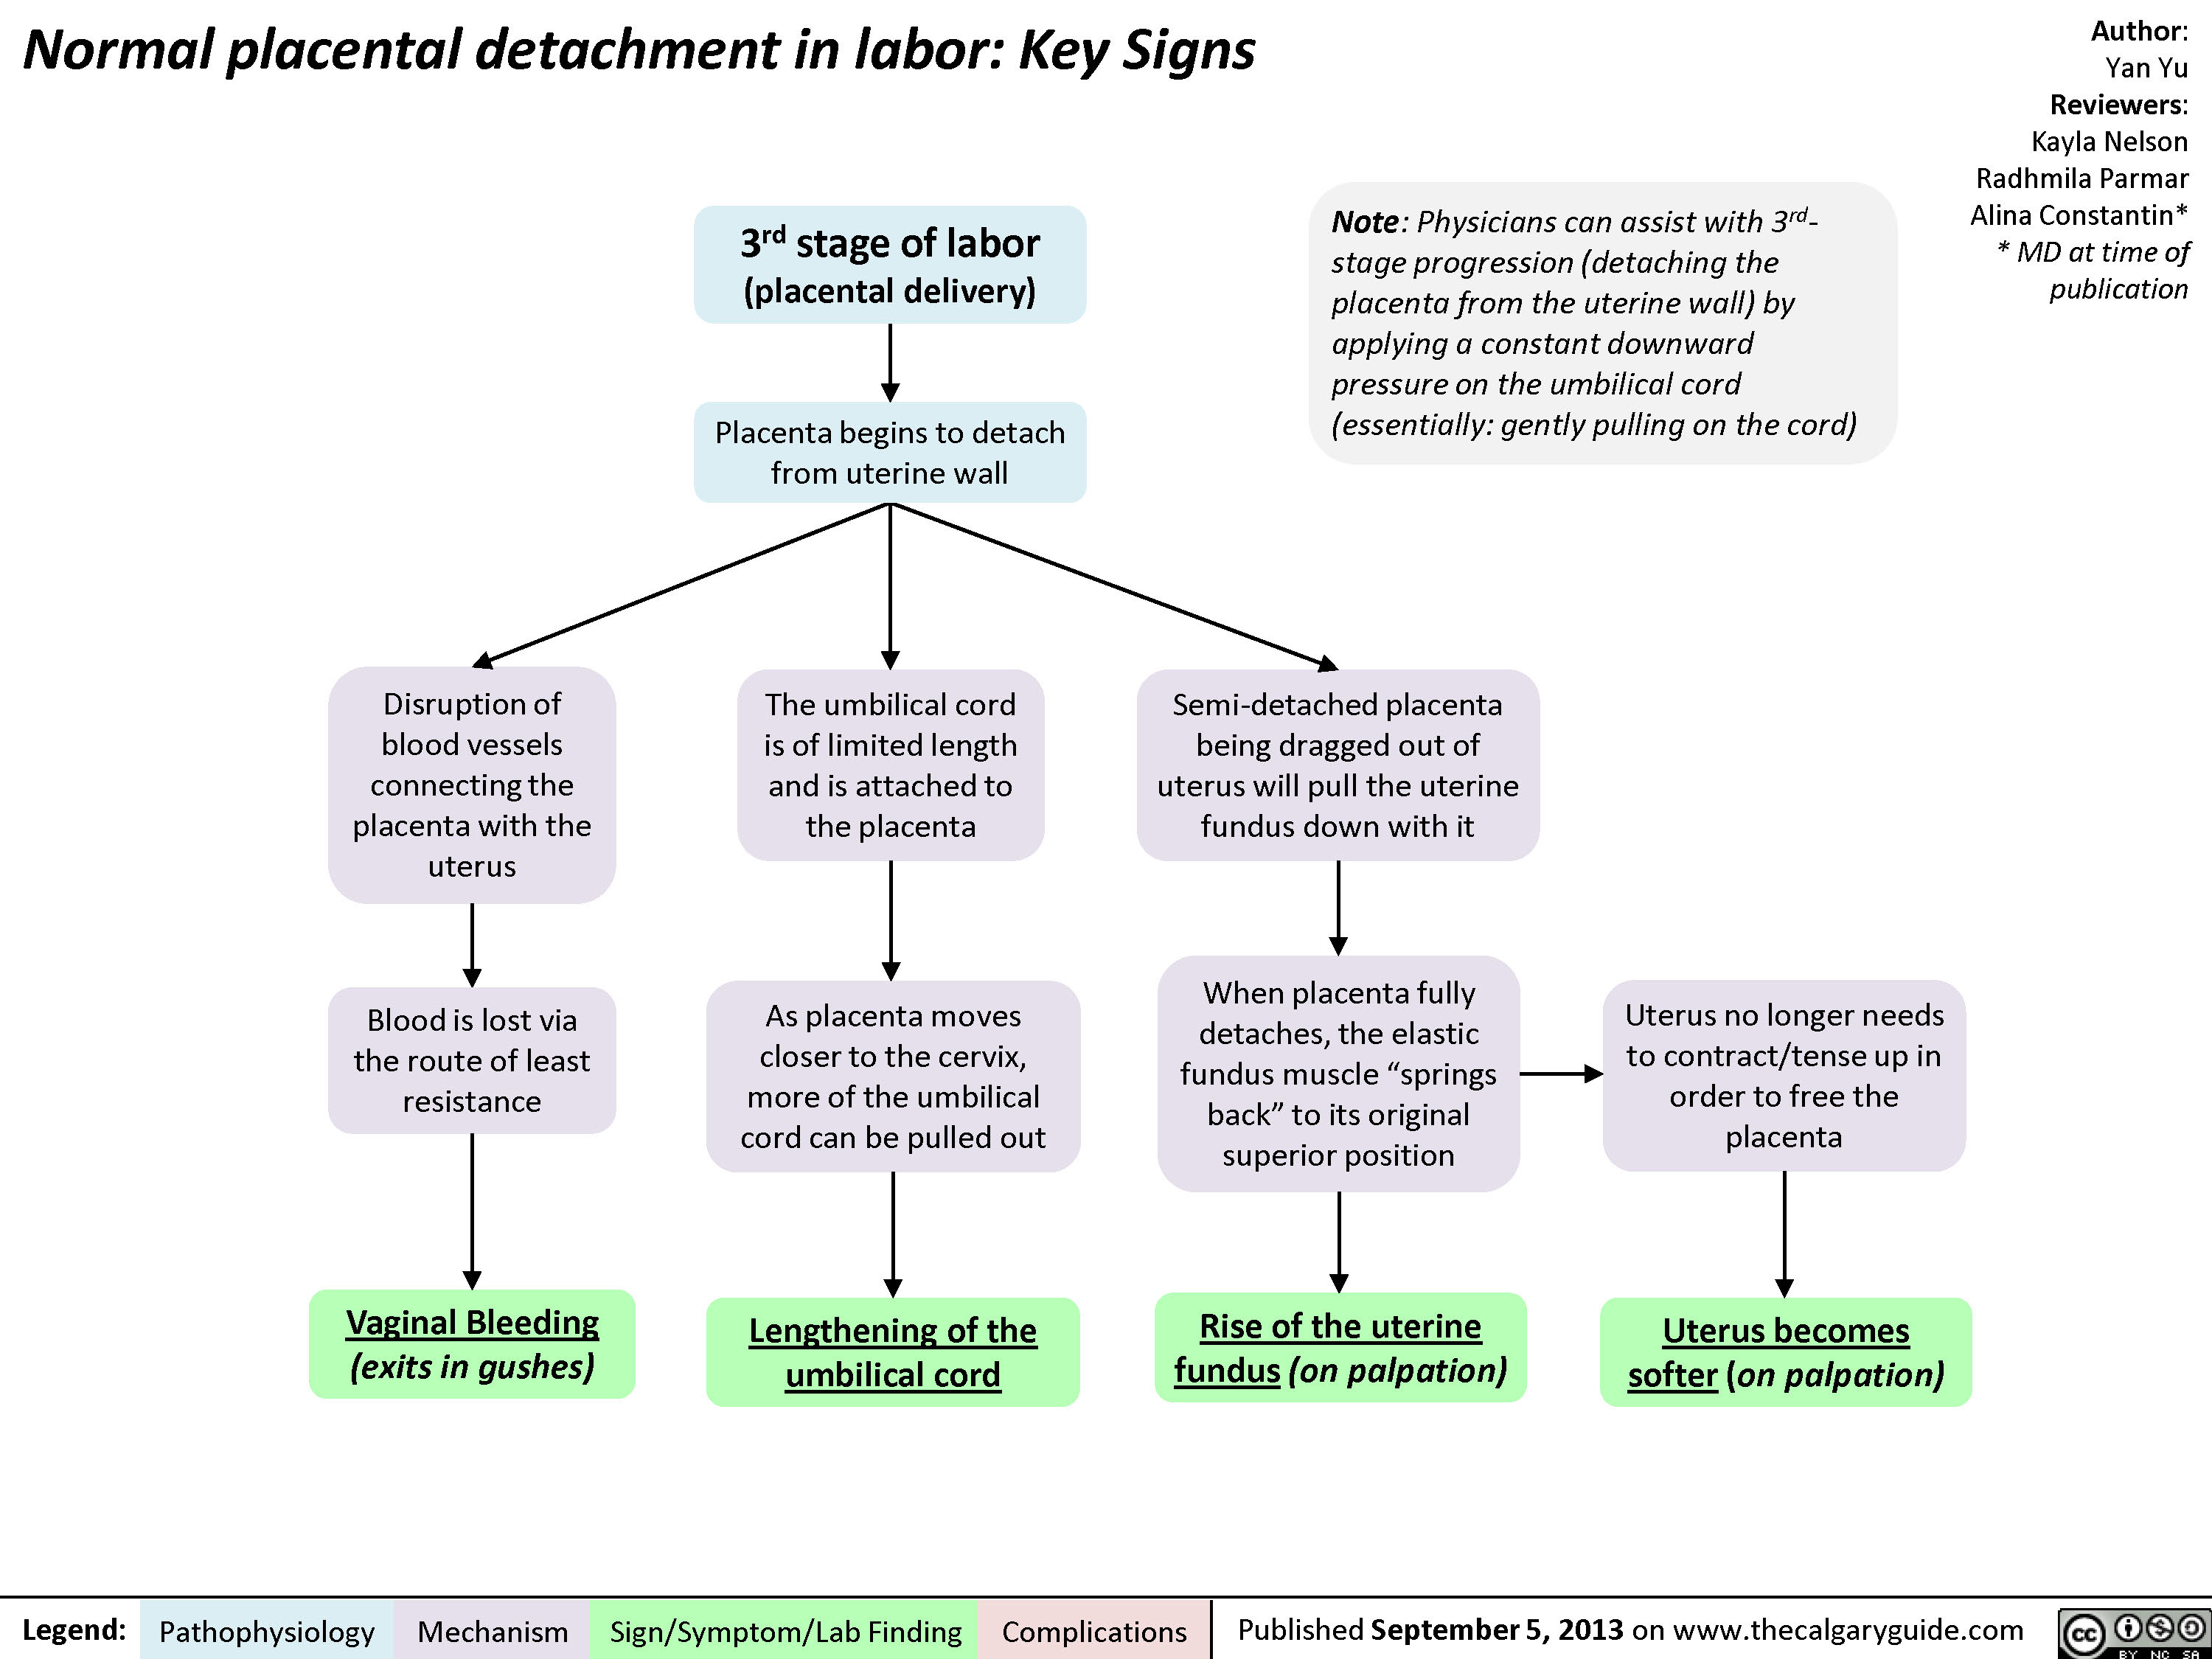 Normal Signs of Placental Detachment